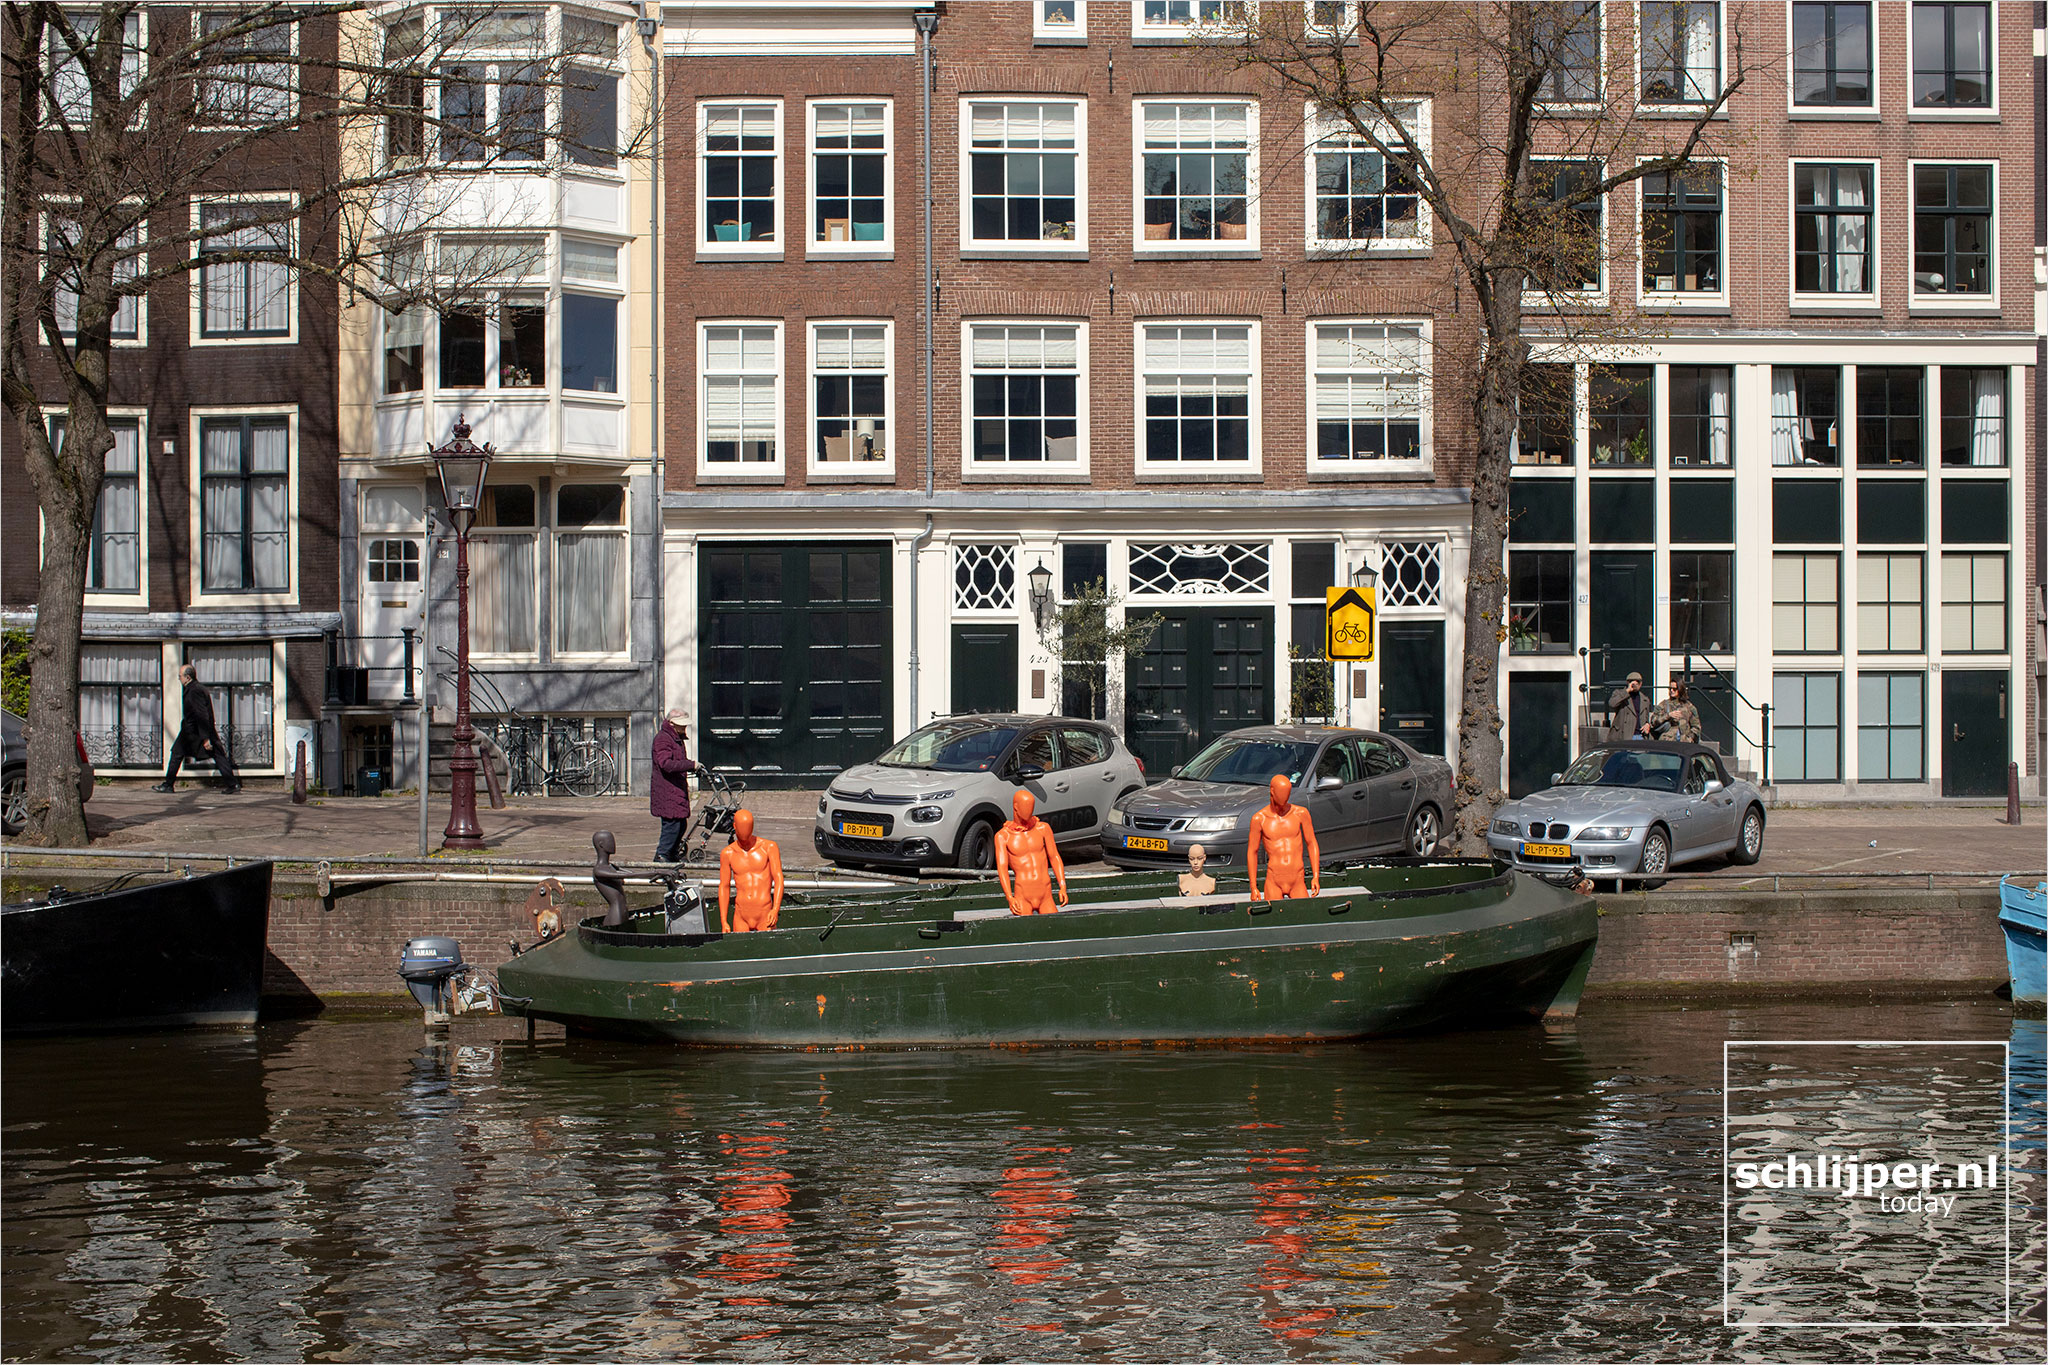 The Netherlands, Amsterdam, 25 april 2021